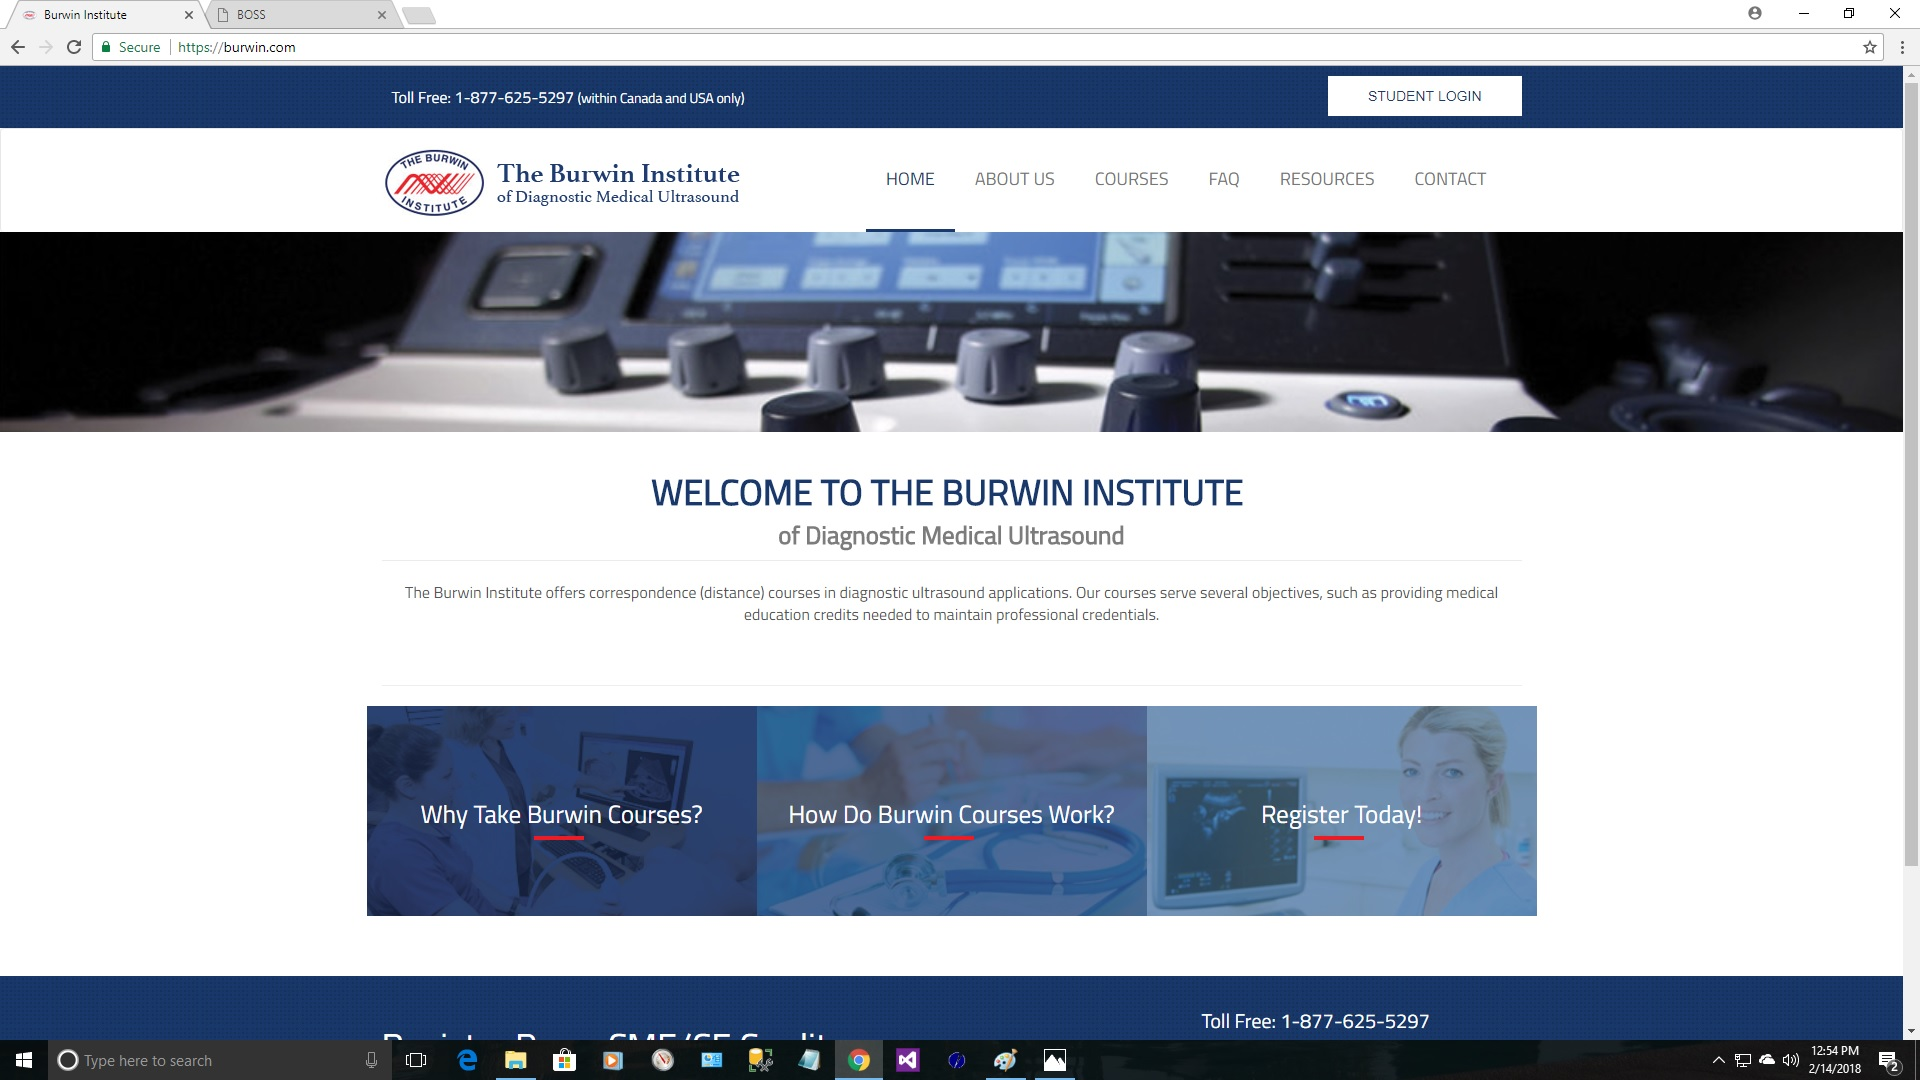 The Burwin Institute